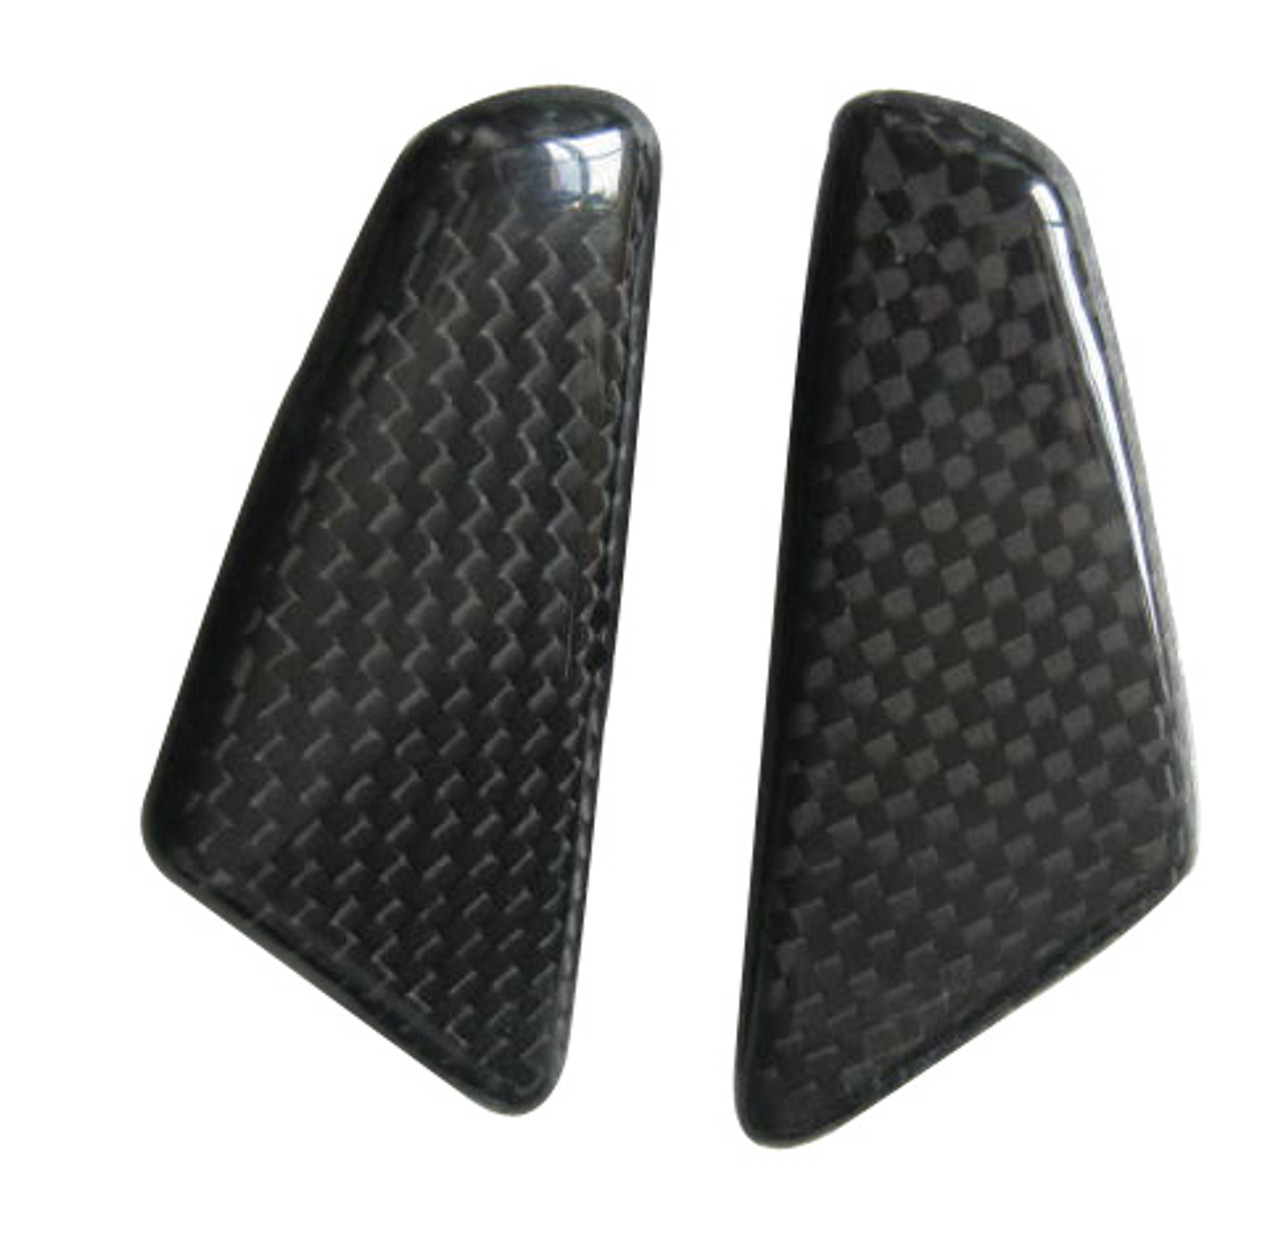 Glossy Plain Weave Carbon Fiber Mirror Blockoff Plates for Ducati Panigale 899, 1199 2012+